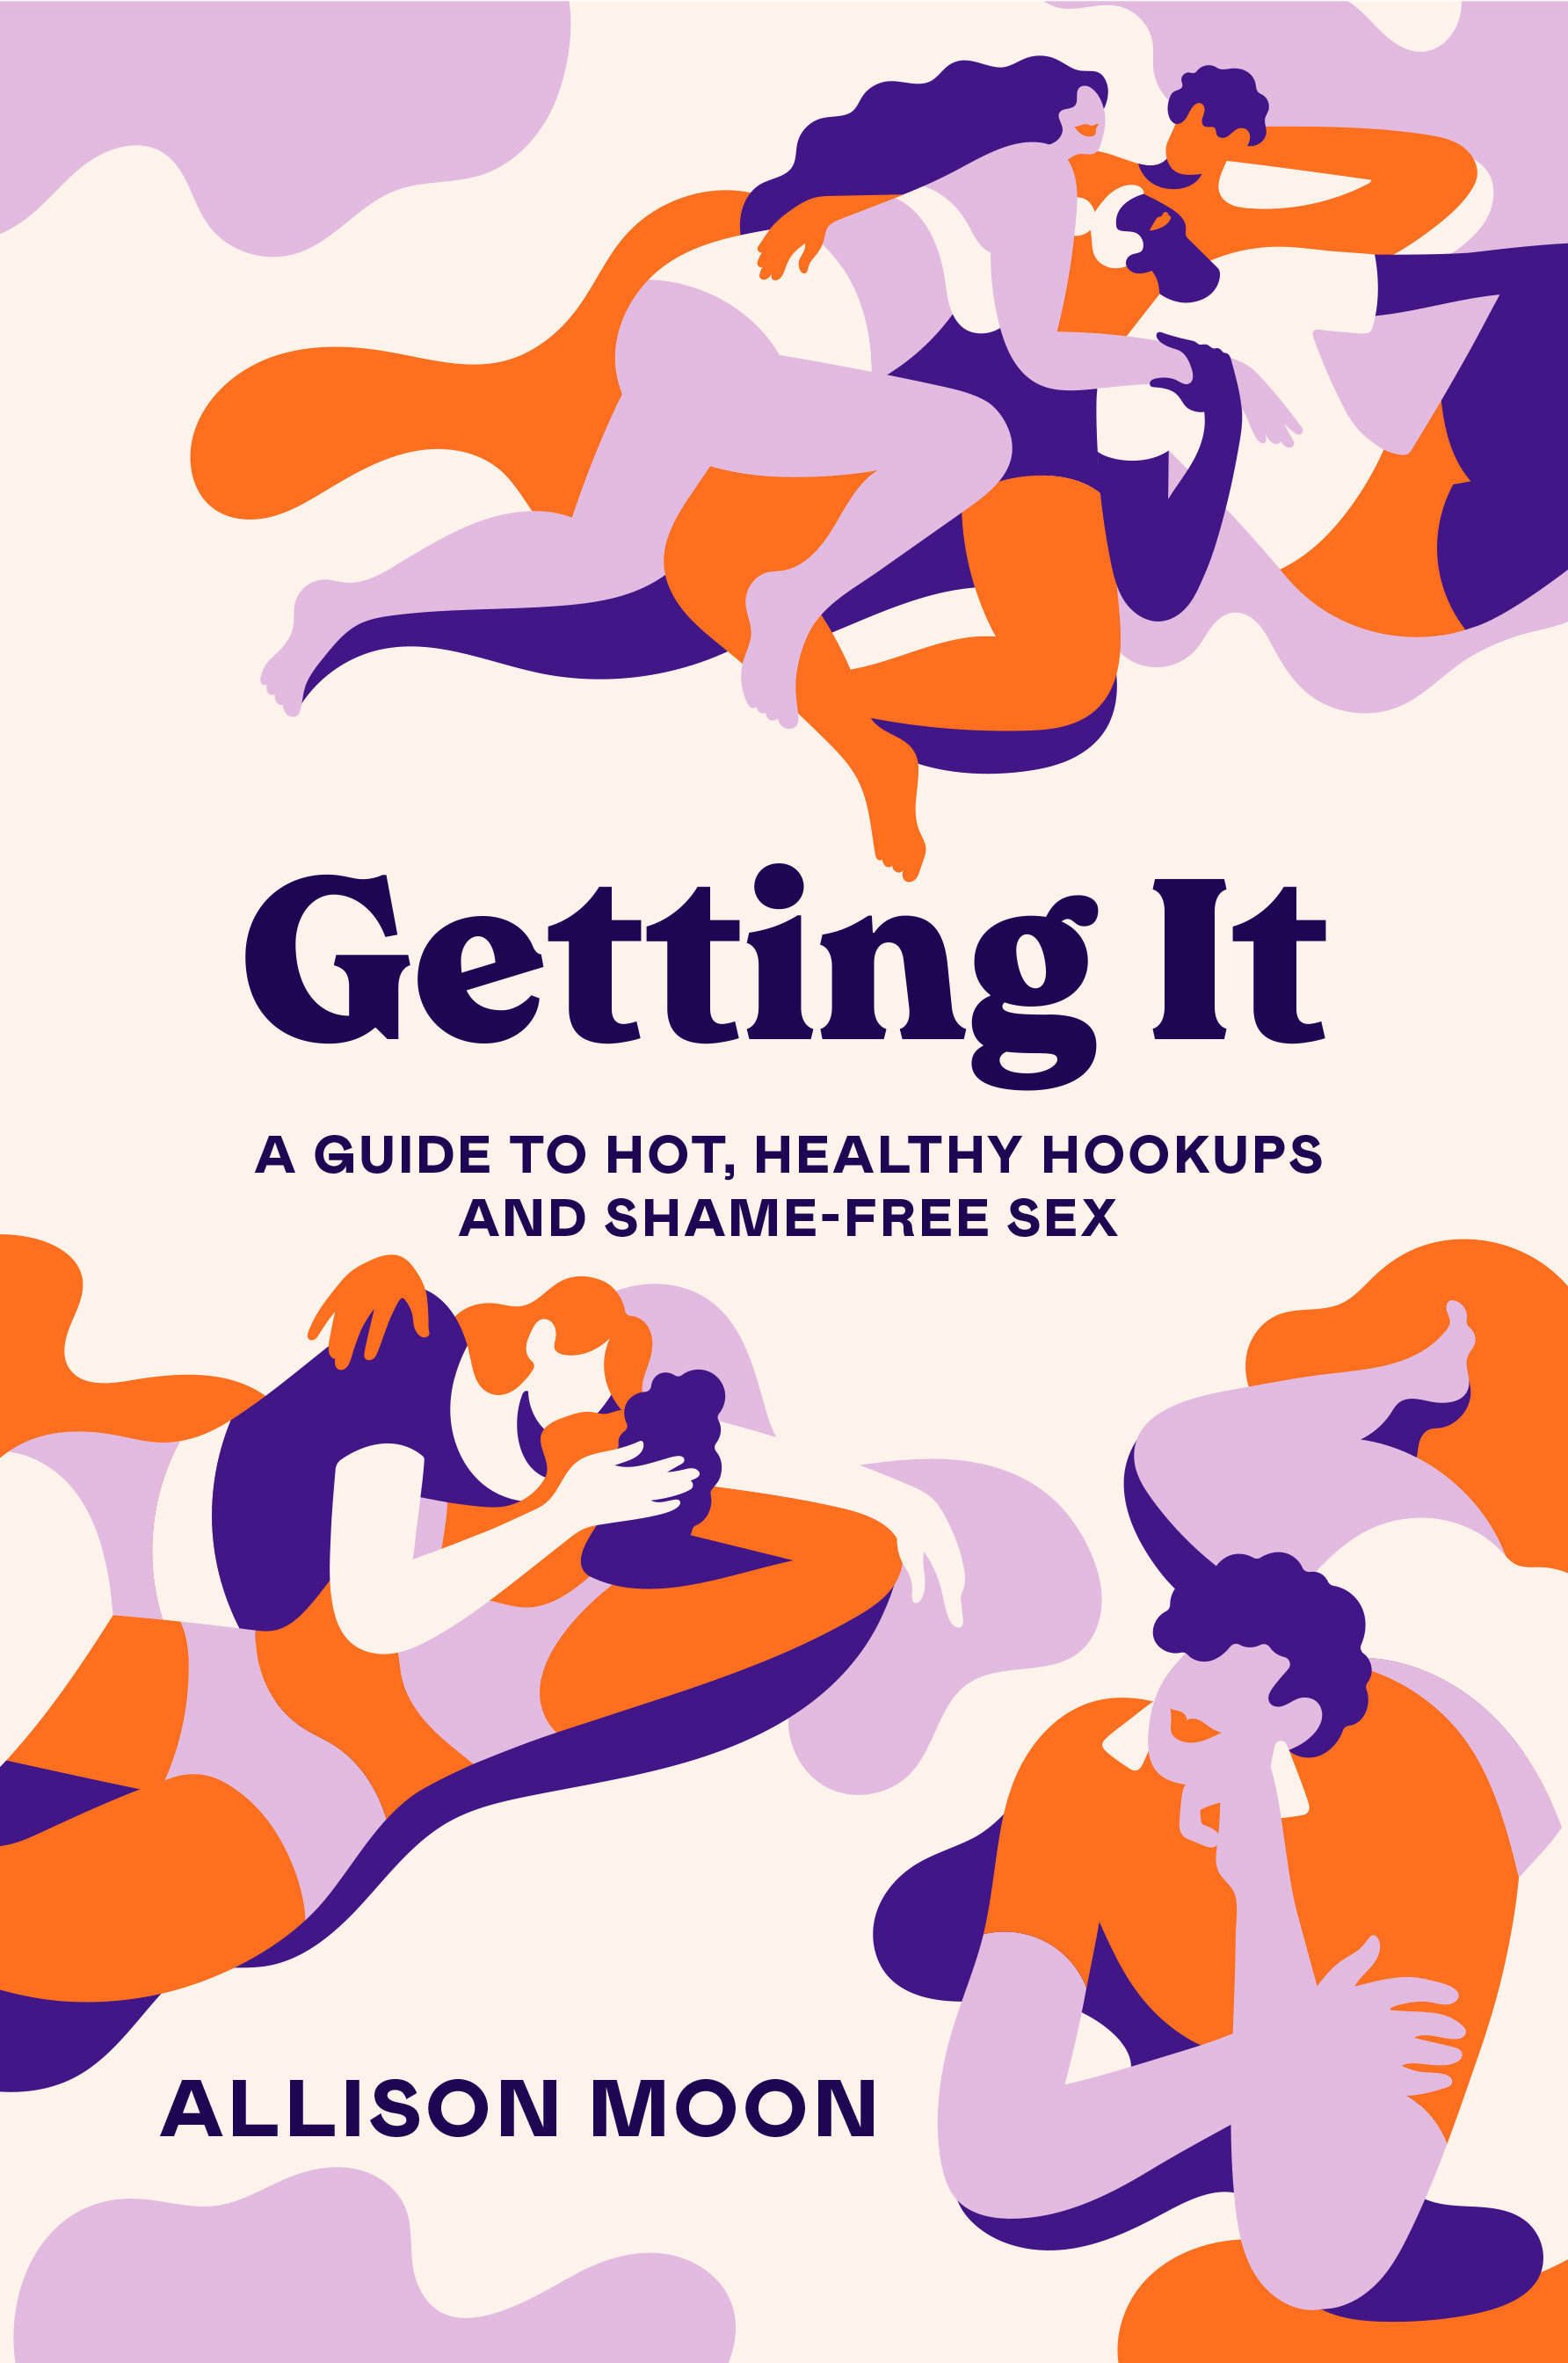 Getting It A Guide to Hot, Healthy Hookups and Shame-Free Sex